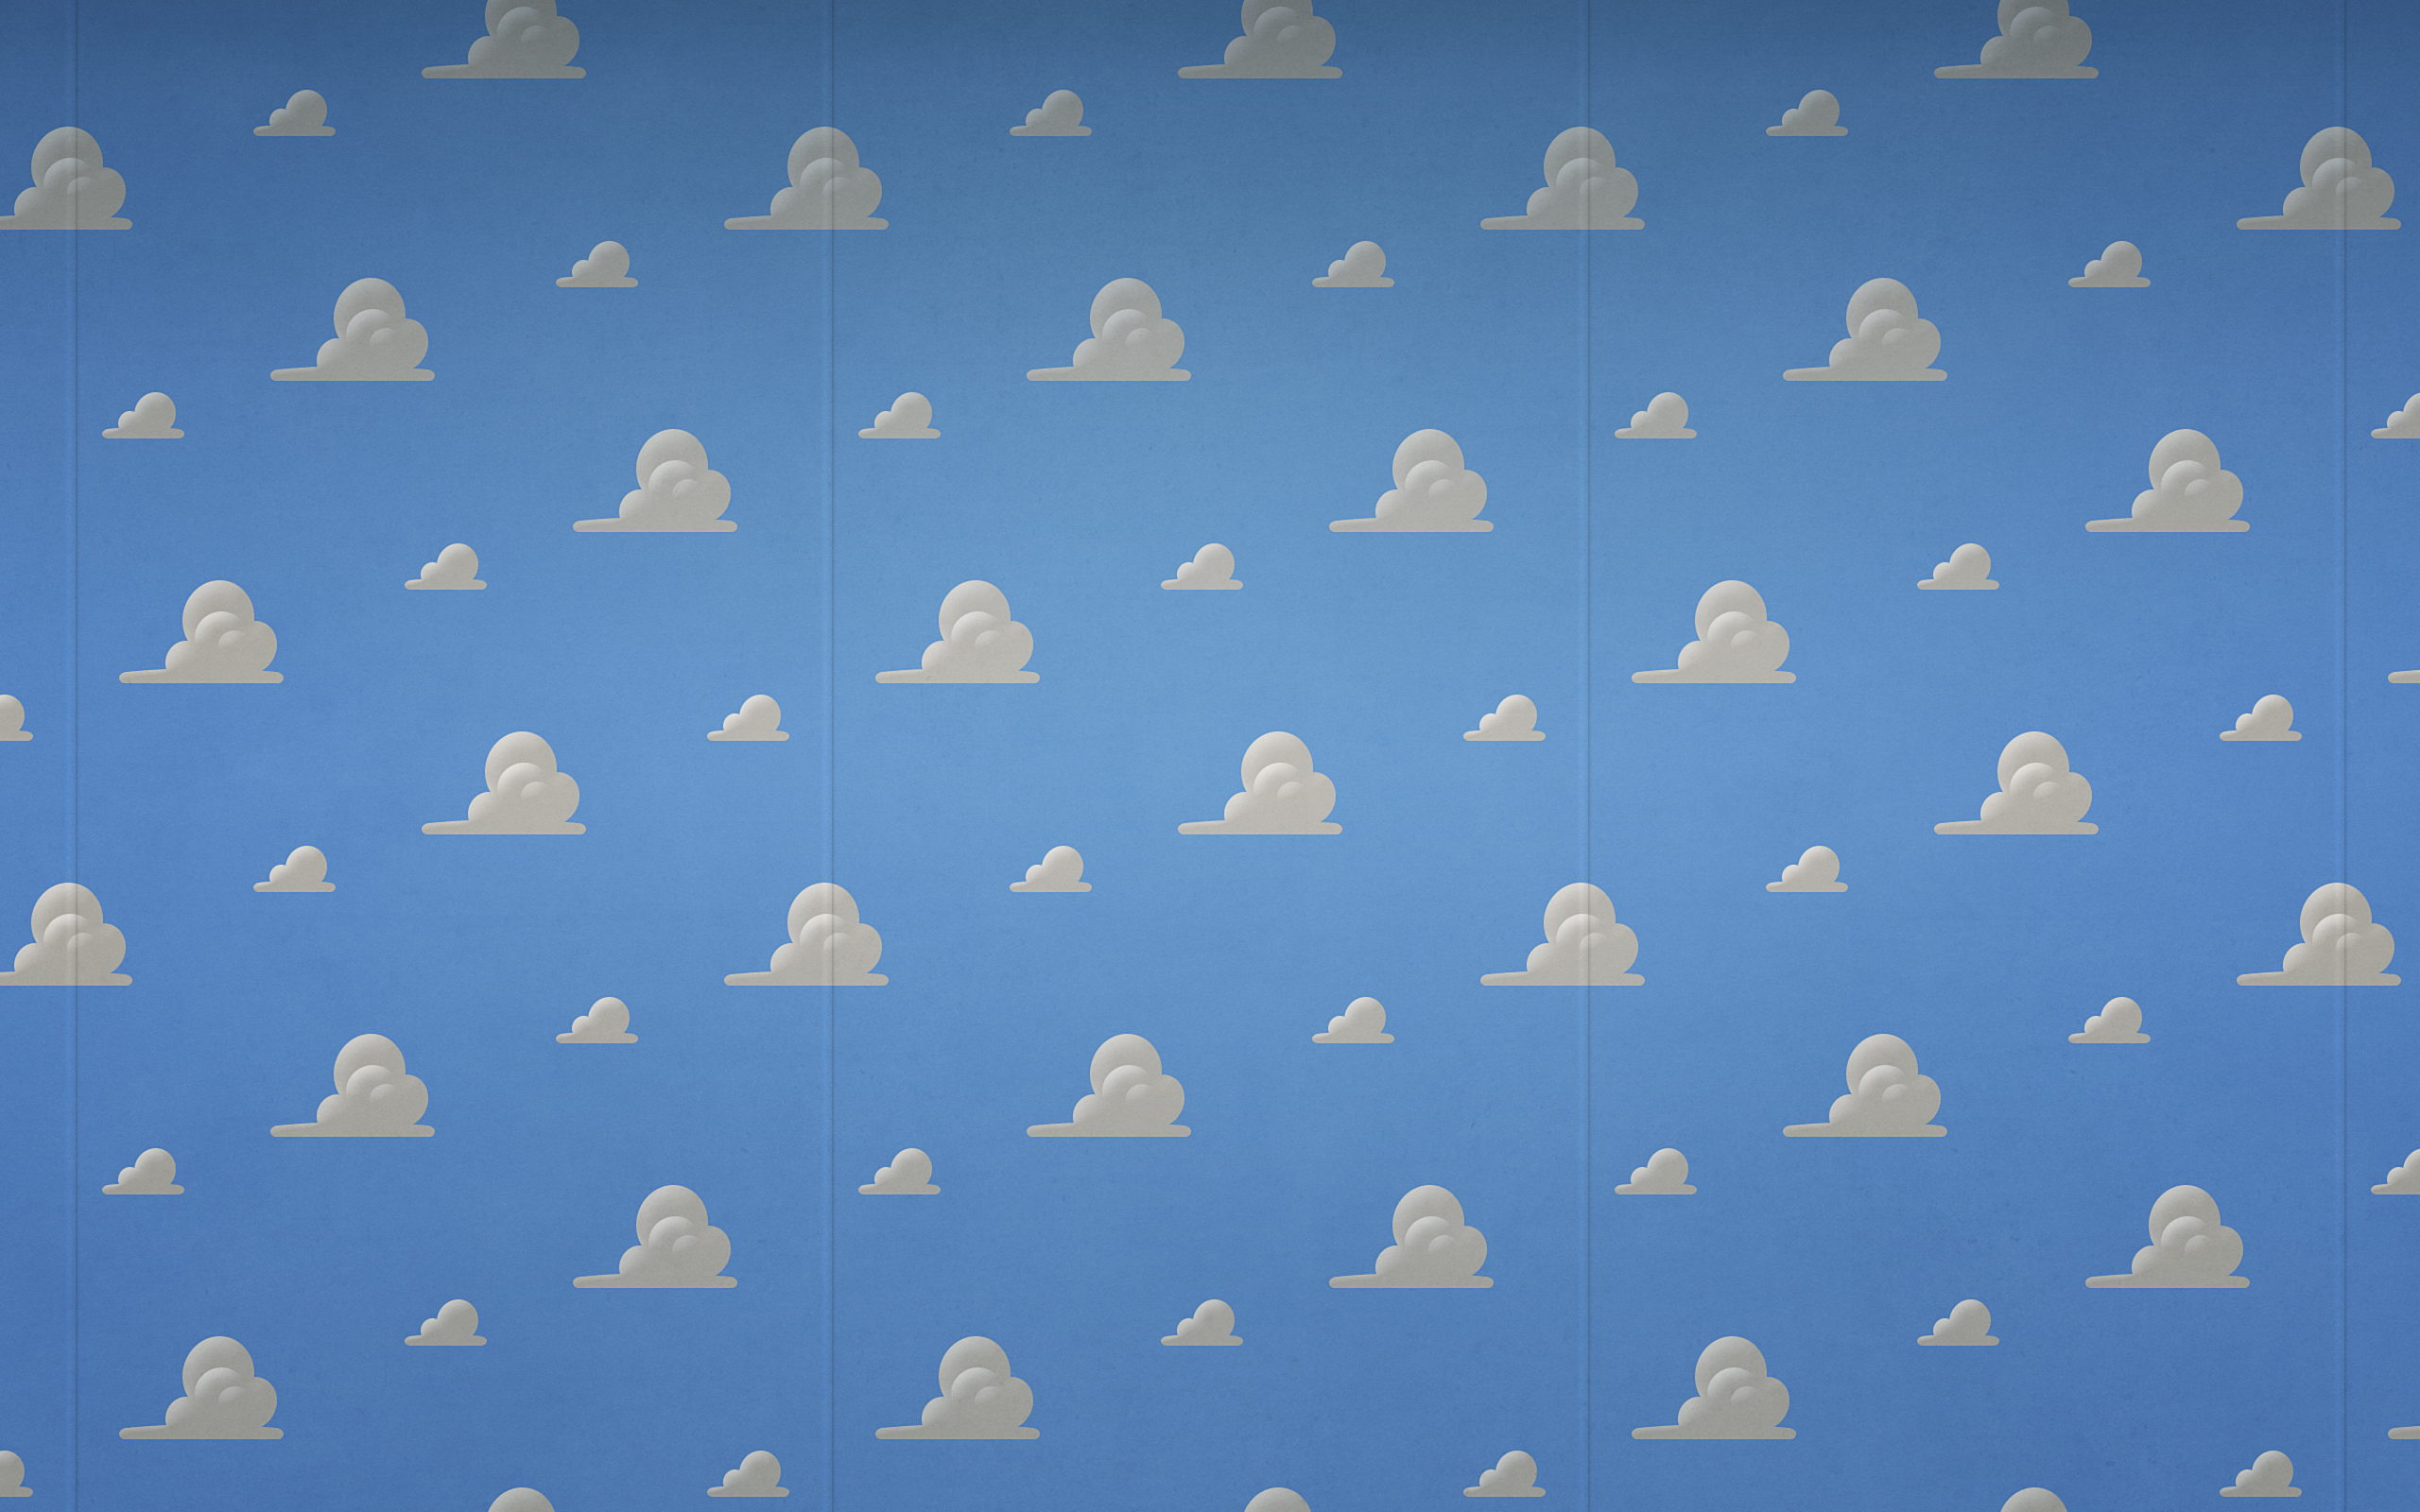 clouds toy story wallpaper 2560x1600 19937 wallpaperup